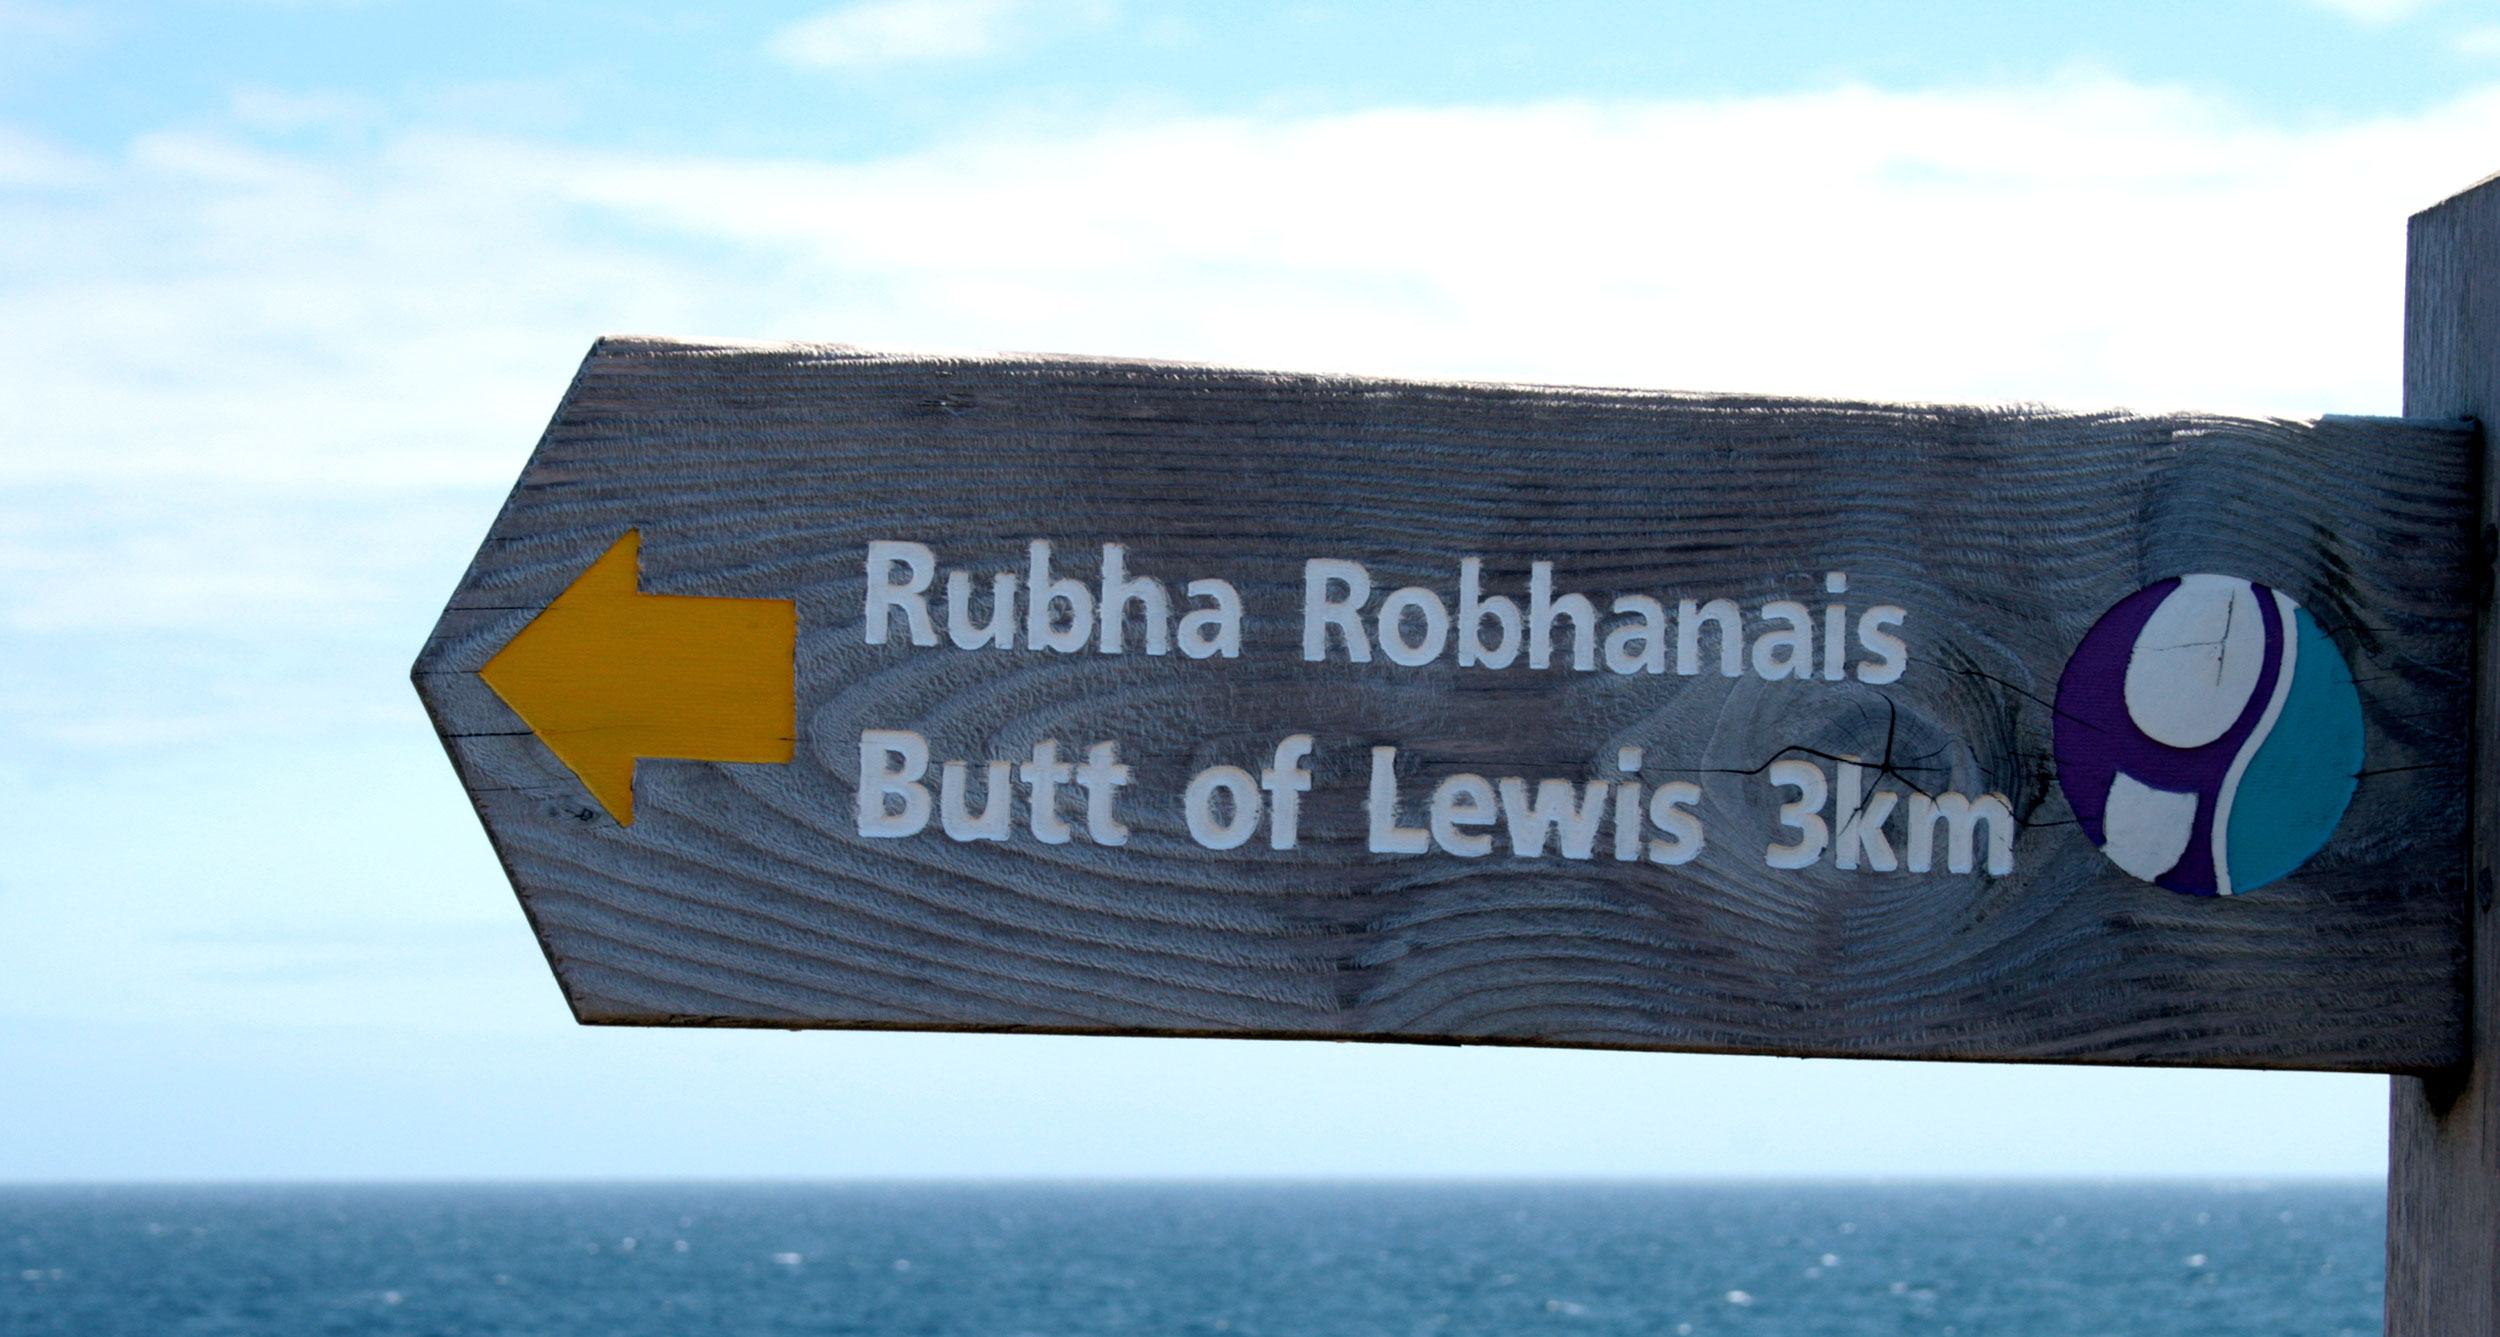 Amusing place names abound, even at Britain's furthest extremities  (Humphrey Butler / Marvellous Maps)